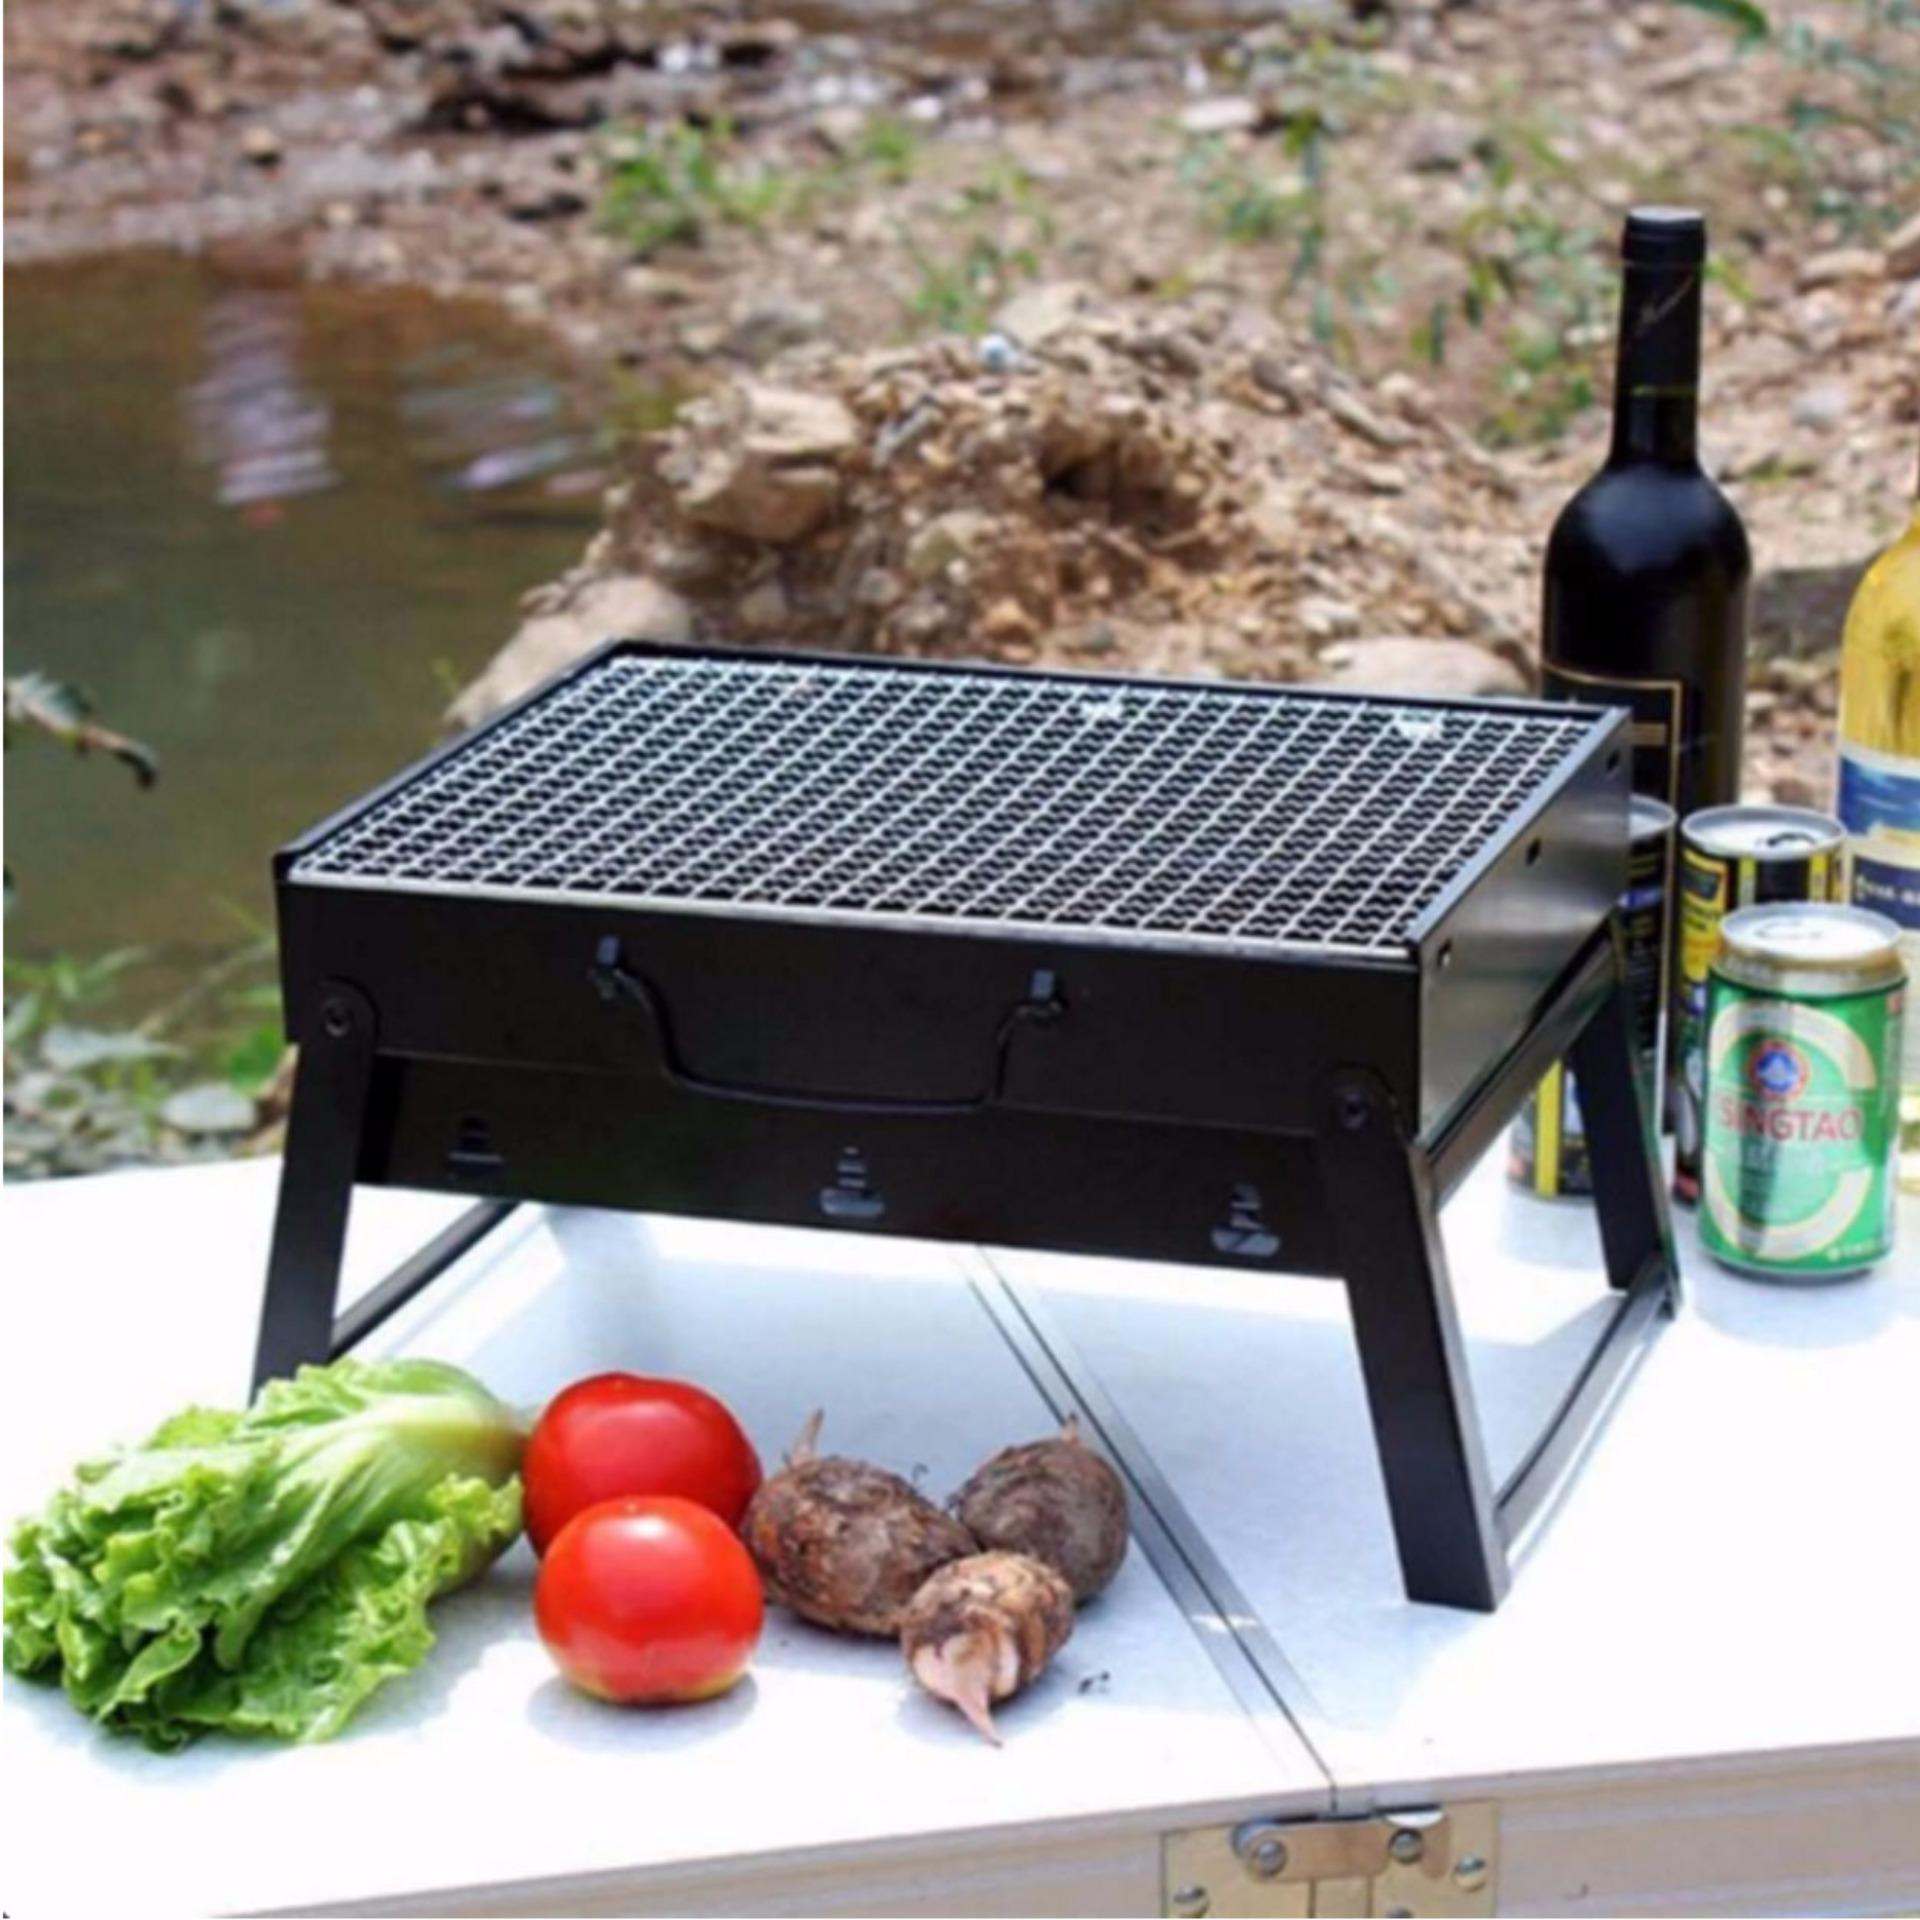 Portable Stainless Steel Barbecue Grill Pits (black) ...